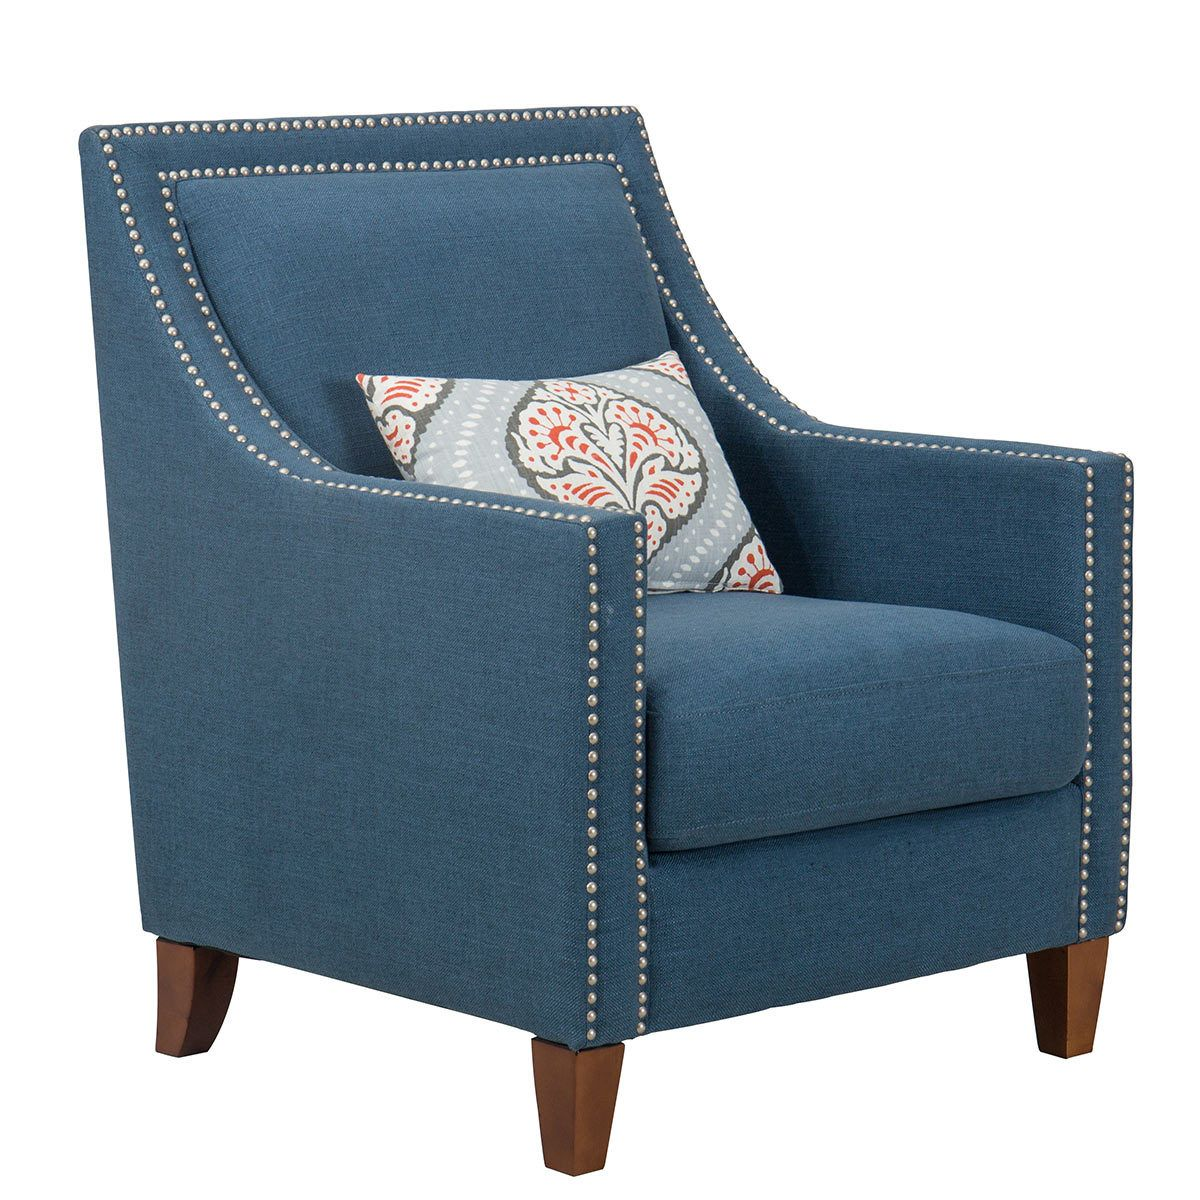 Accent Chairs At Costco Homepop Blue Fabric Chair With Accent Pillow Dream House